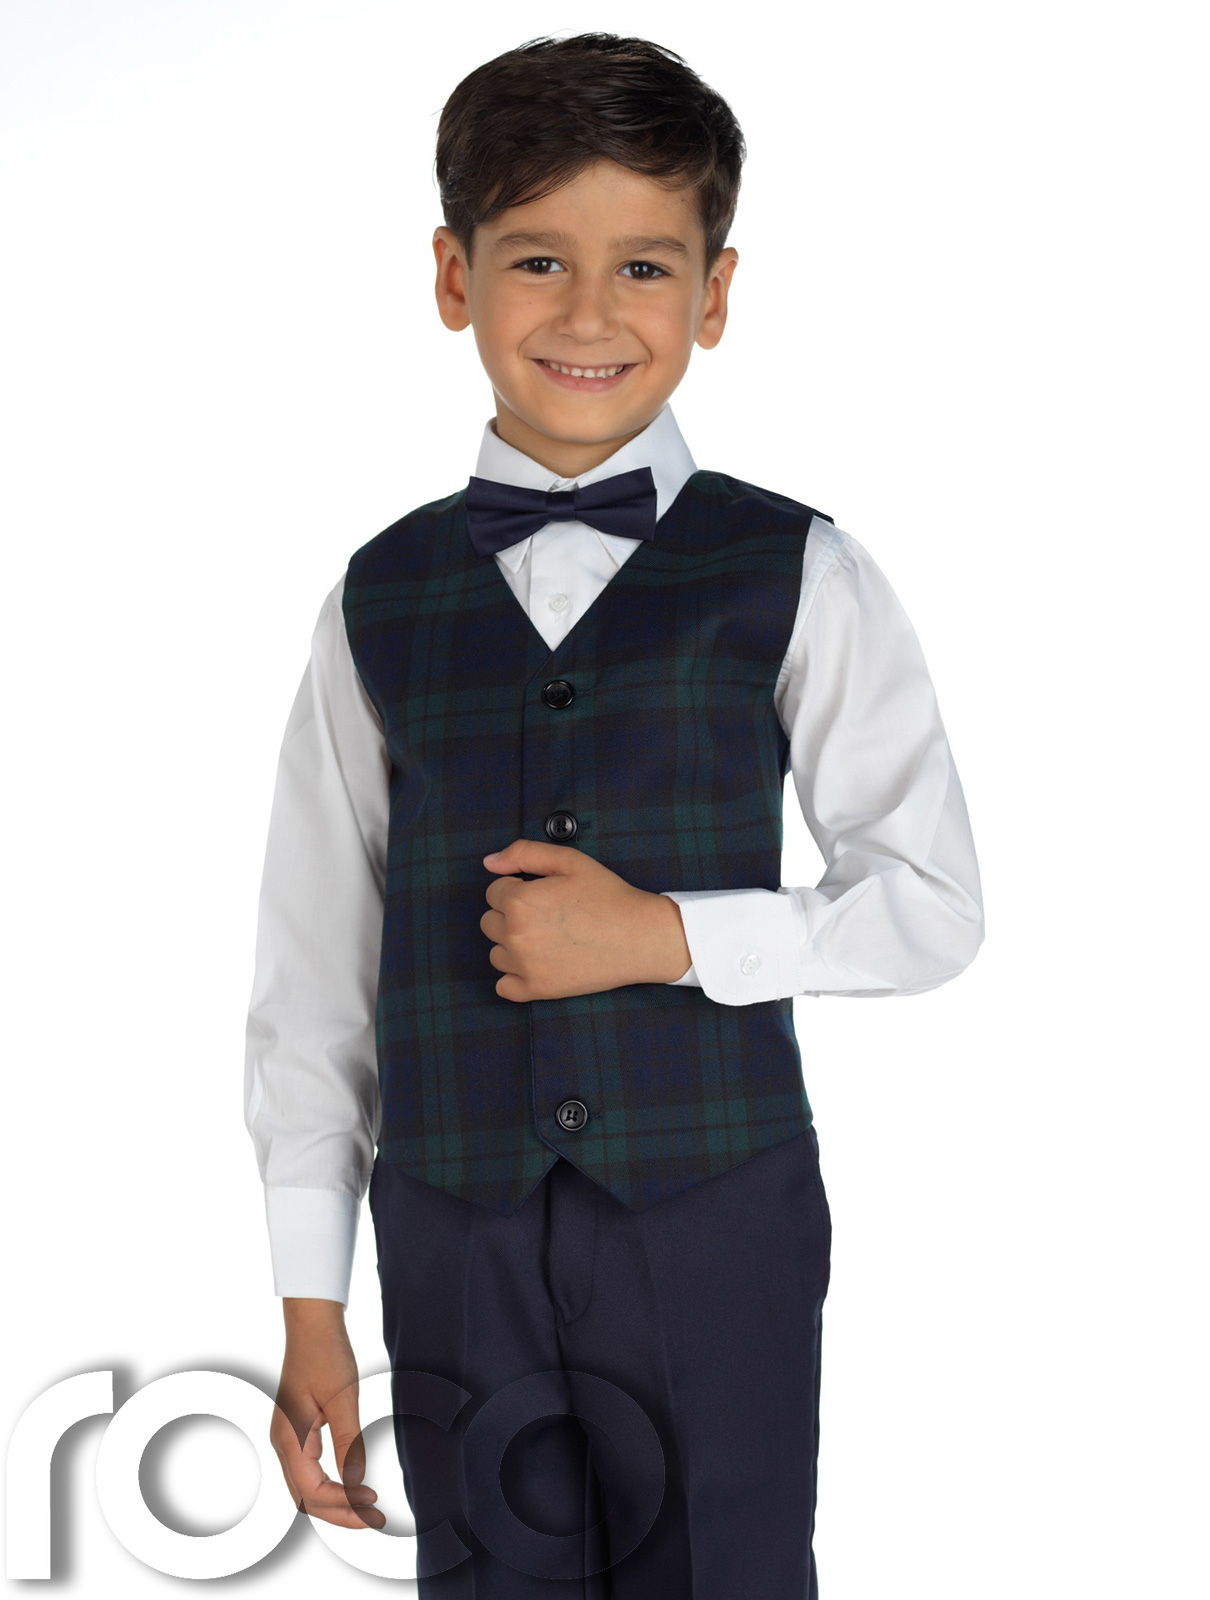 9263ae9a617 Details about Boys Waistcoat Suit